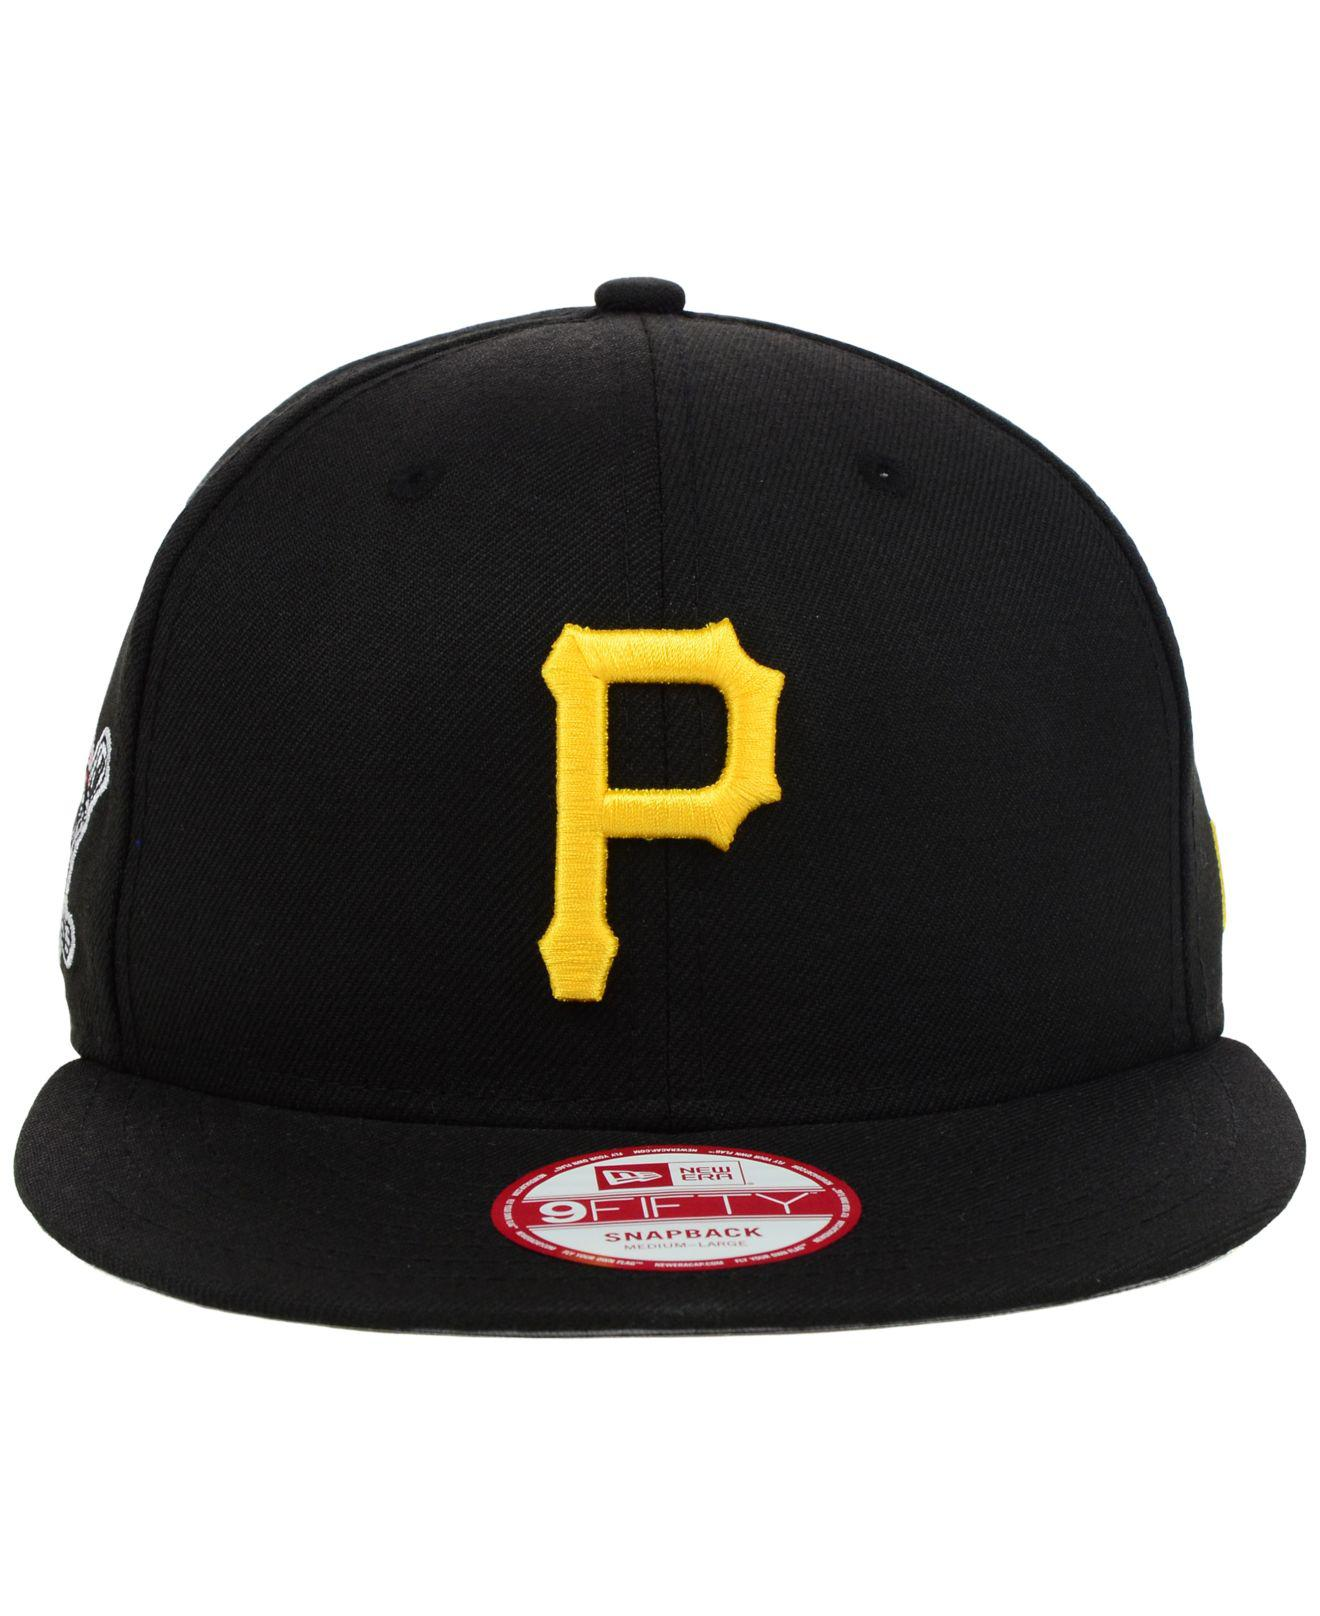 promo code bfe8e c50f7 Lyst - KTZ Pittsburgh Pirates Mlb 2 Tone Link 9fifty Snapback Cap in Black  for Men